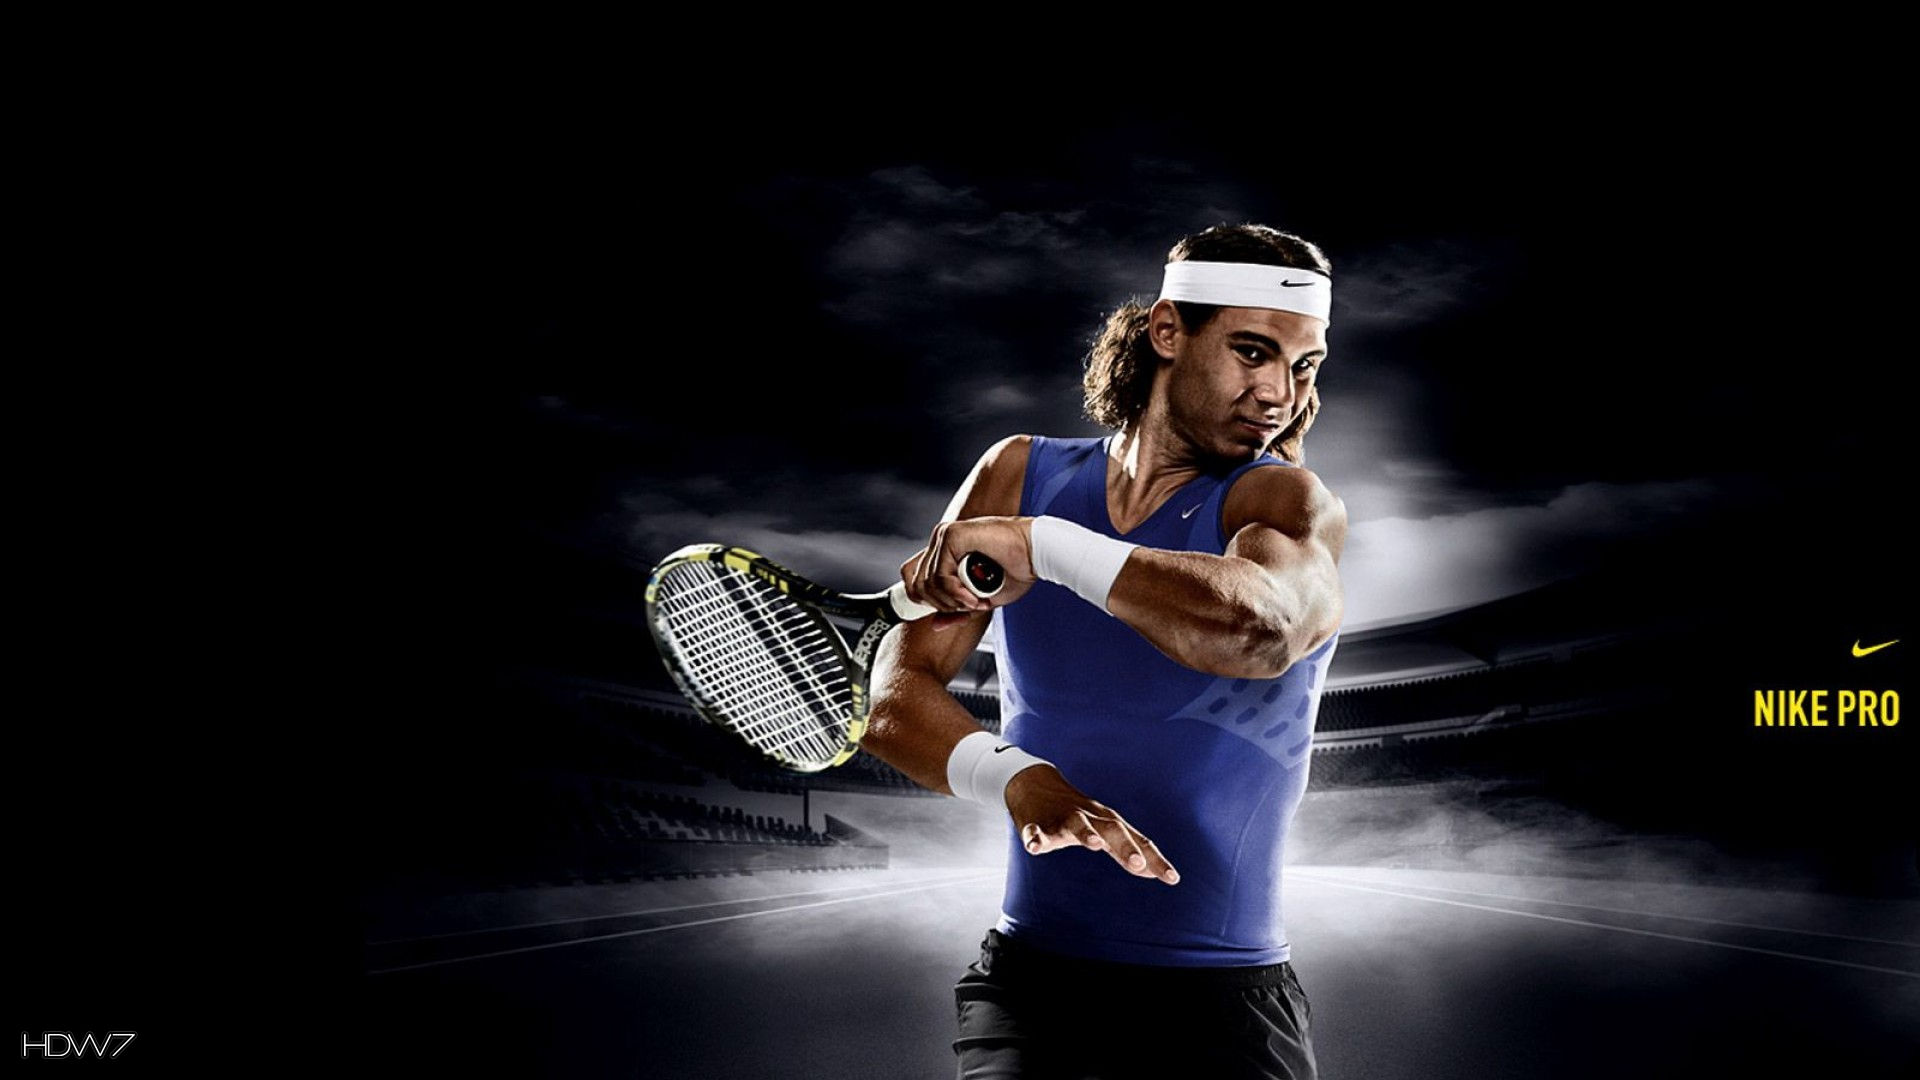 Rafael Nadal Tennis Player 1080x1920 Hd Wallpaper Gallery 180